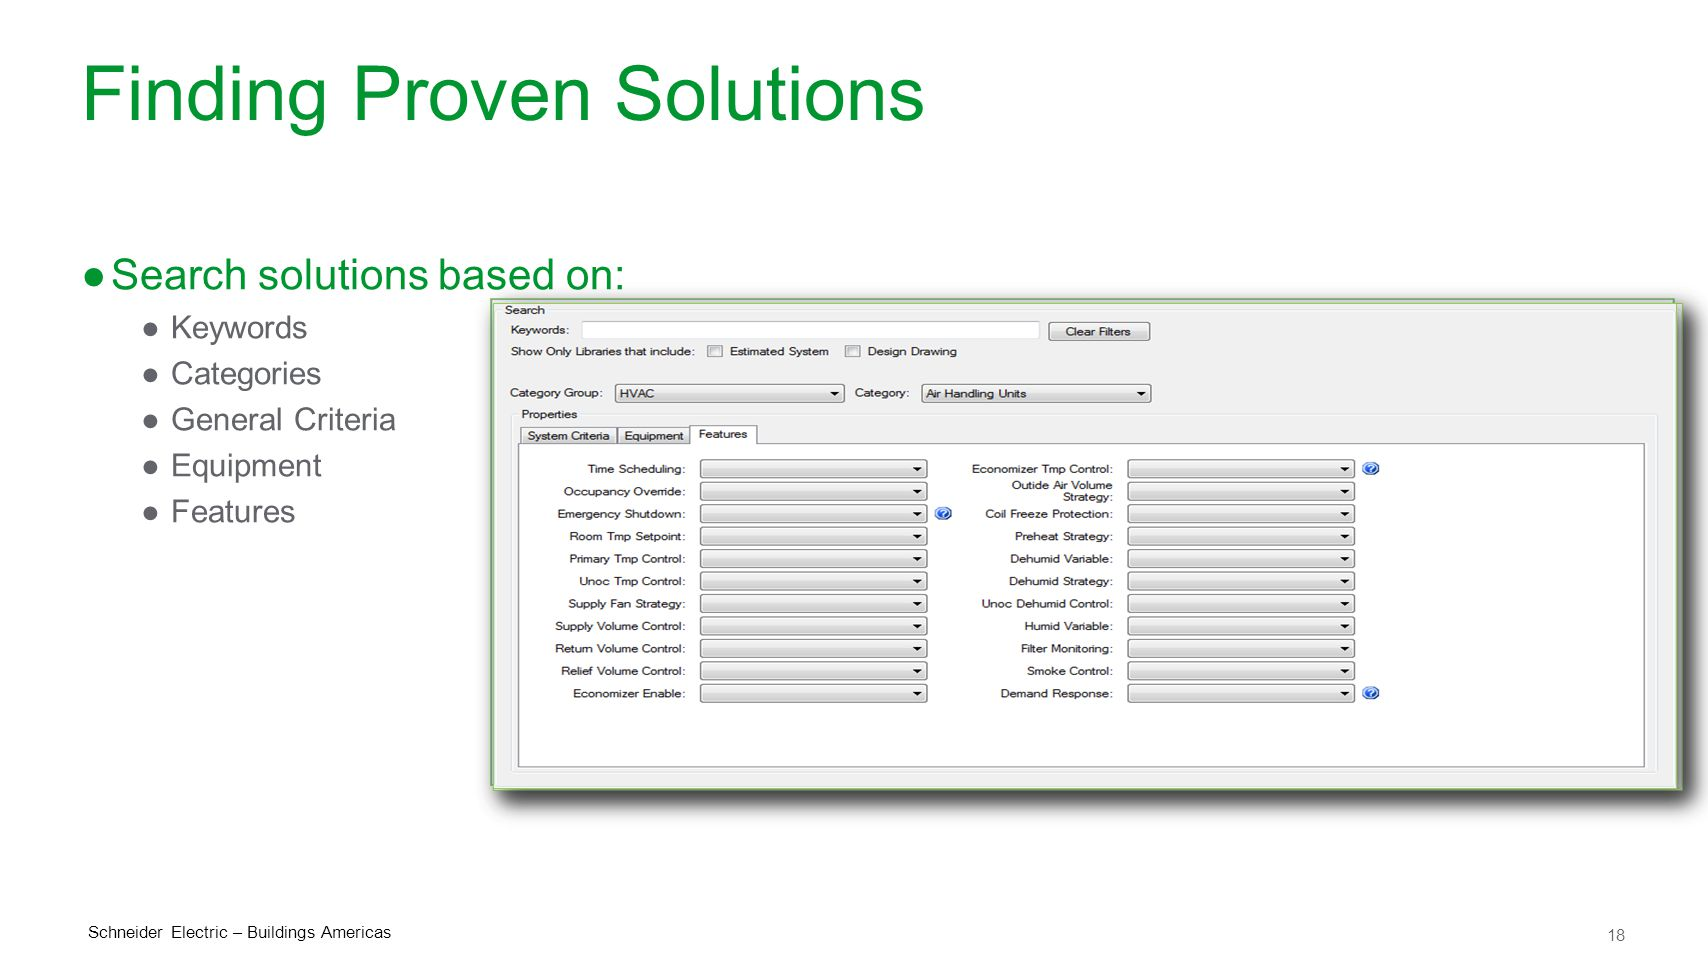 Finding Proven Solutions